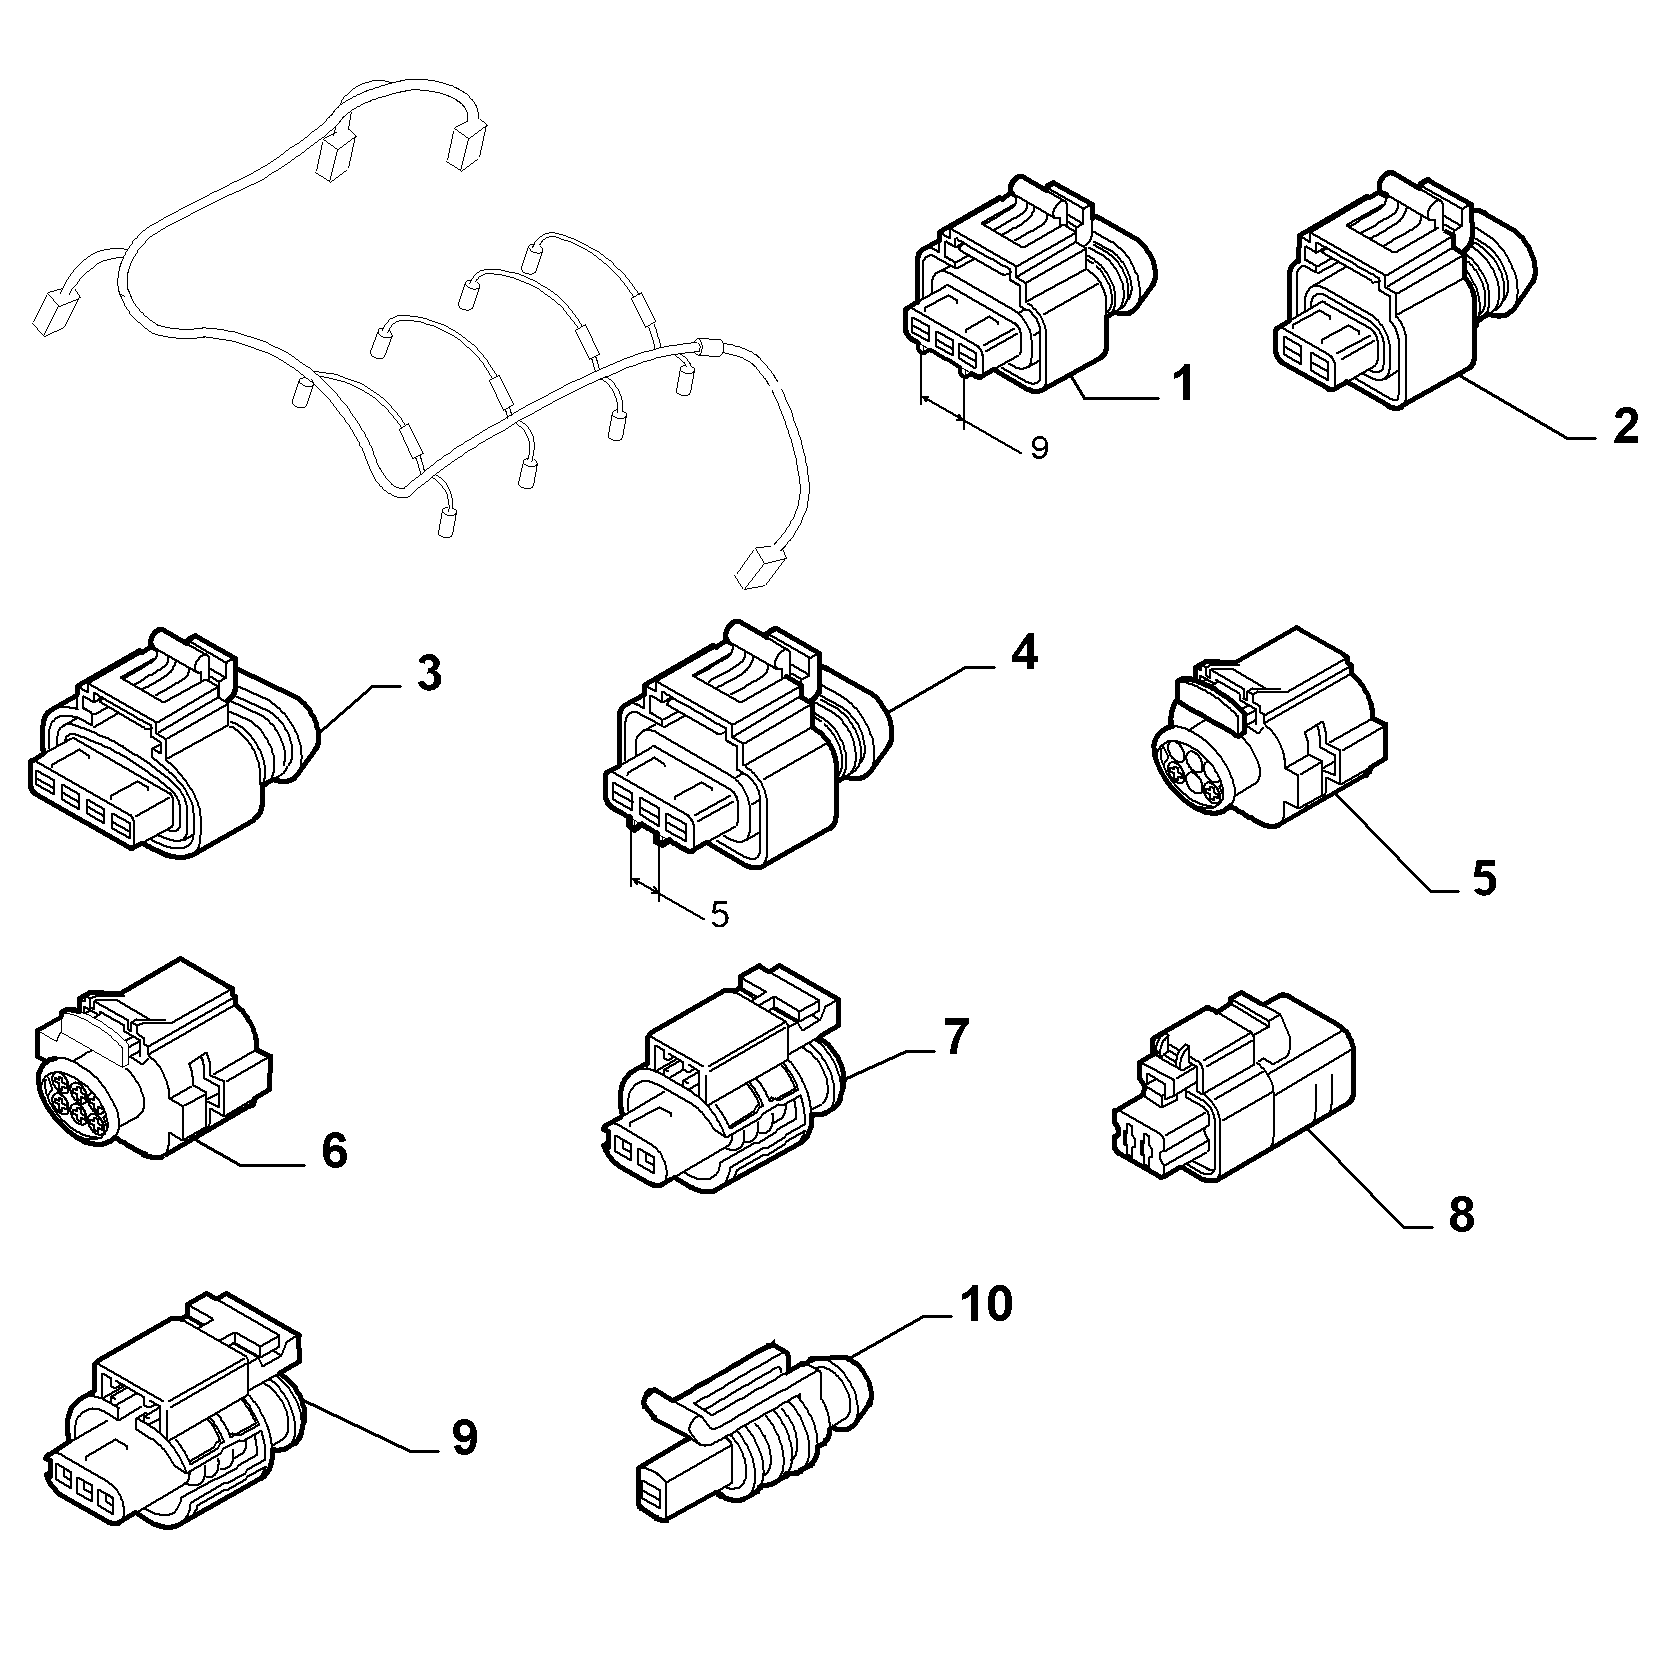 10226-060 ENGINE HARNESS CONNECTORS